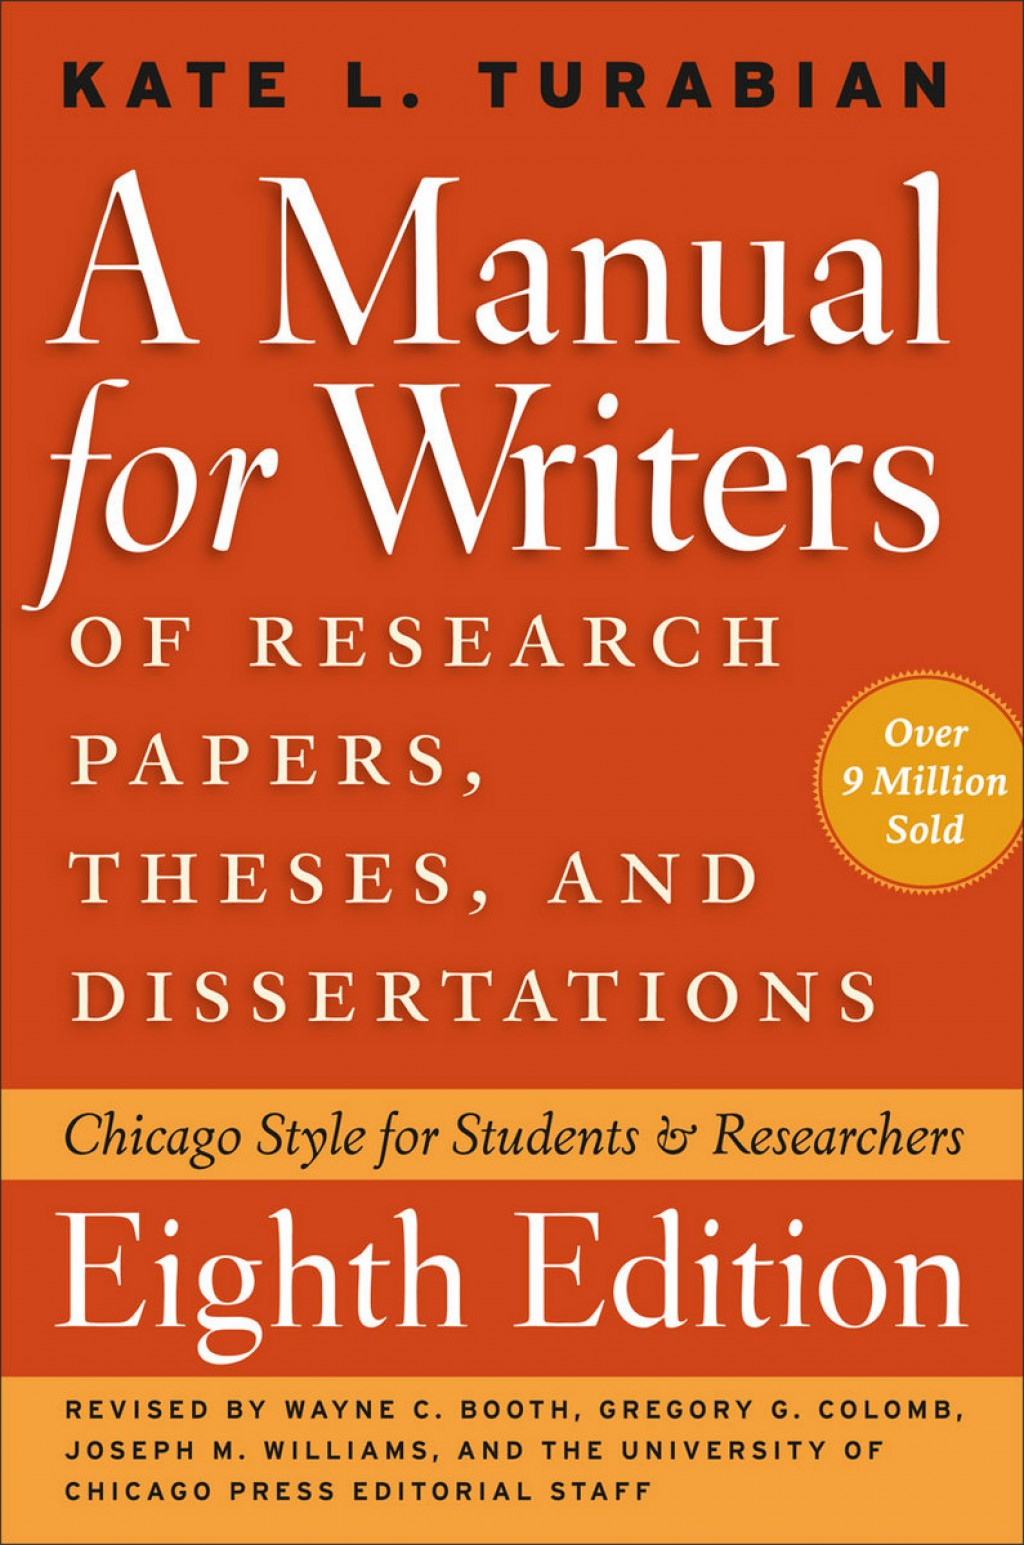 002 Frontcover Manual For Writers Of Researchs Theses And Dissertations Sensational A Research Papers 8th Edition Pdf Eighth Large